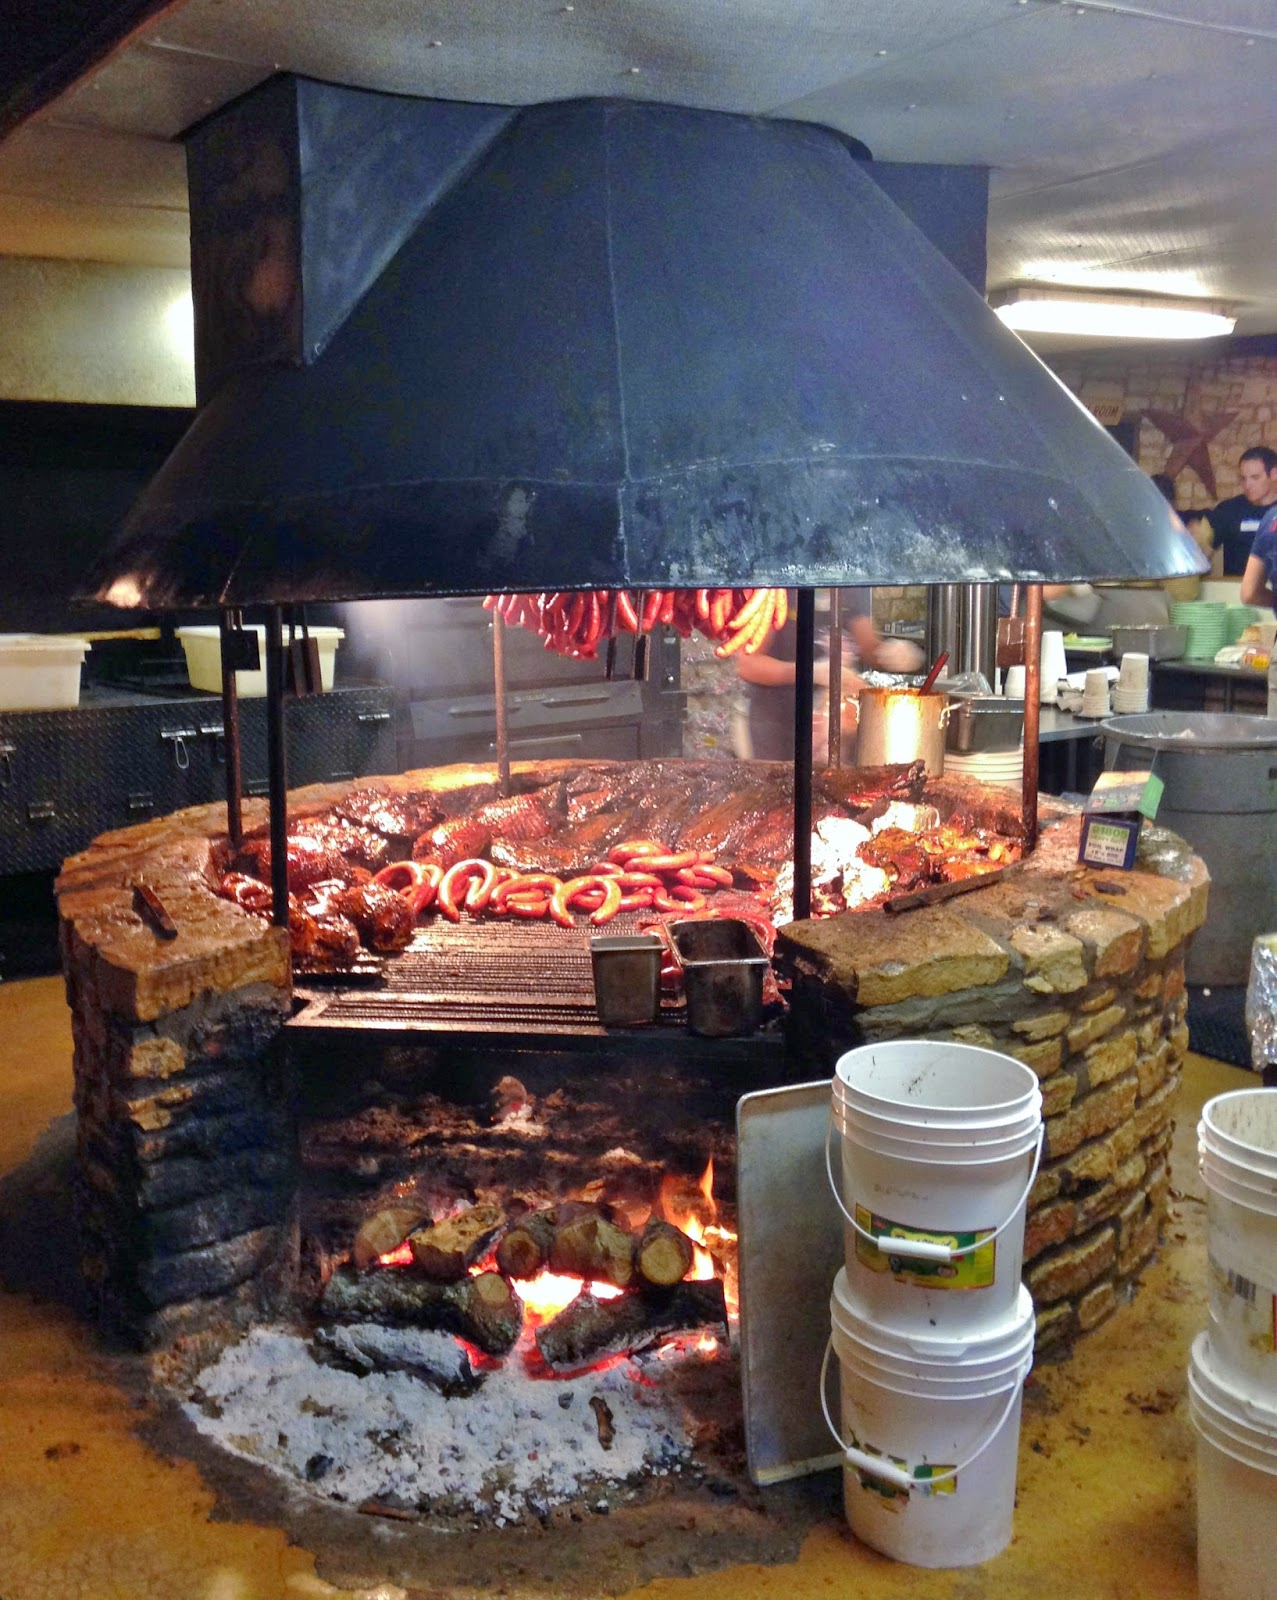 The iconic shot of the selection of smoked meats at The Salt Lick